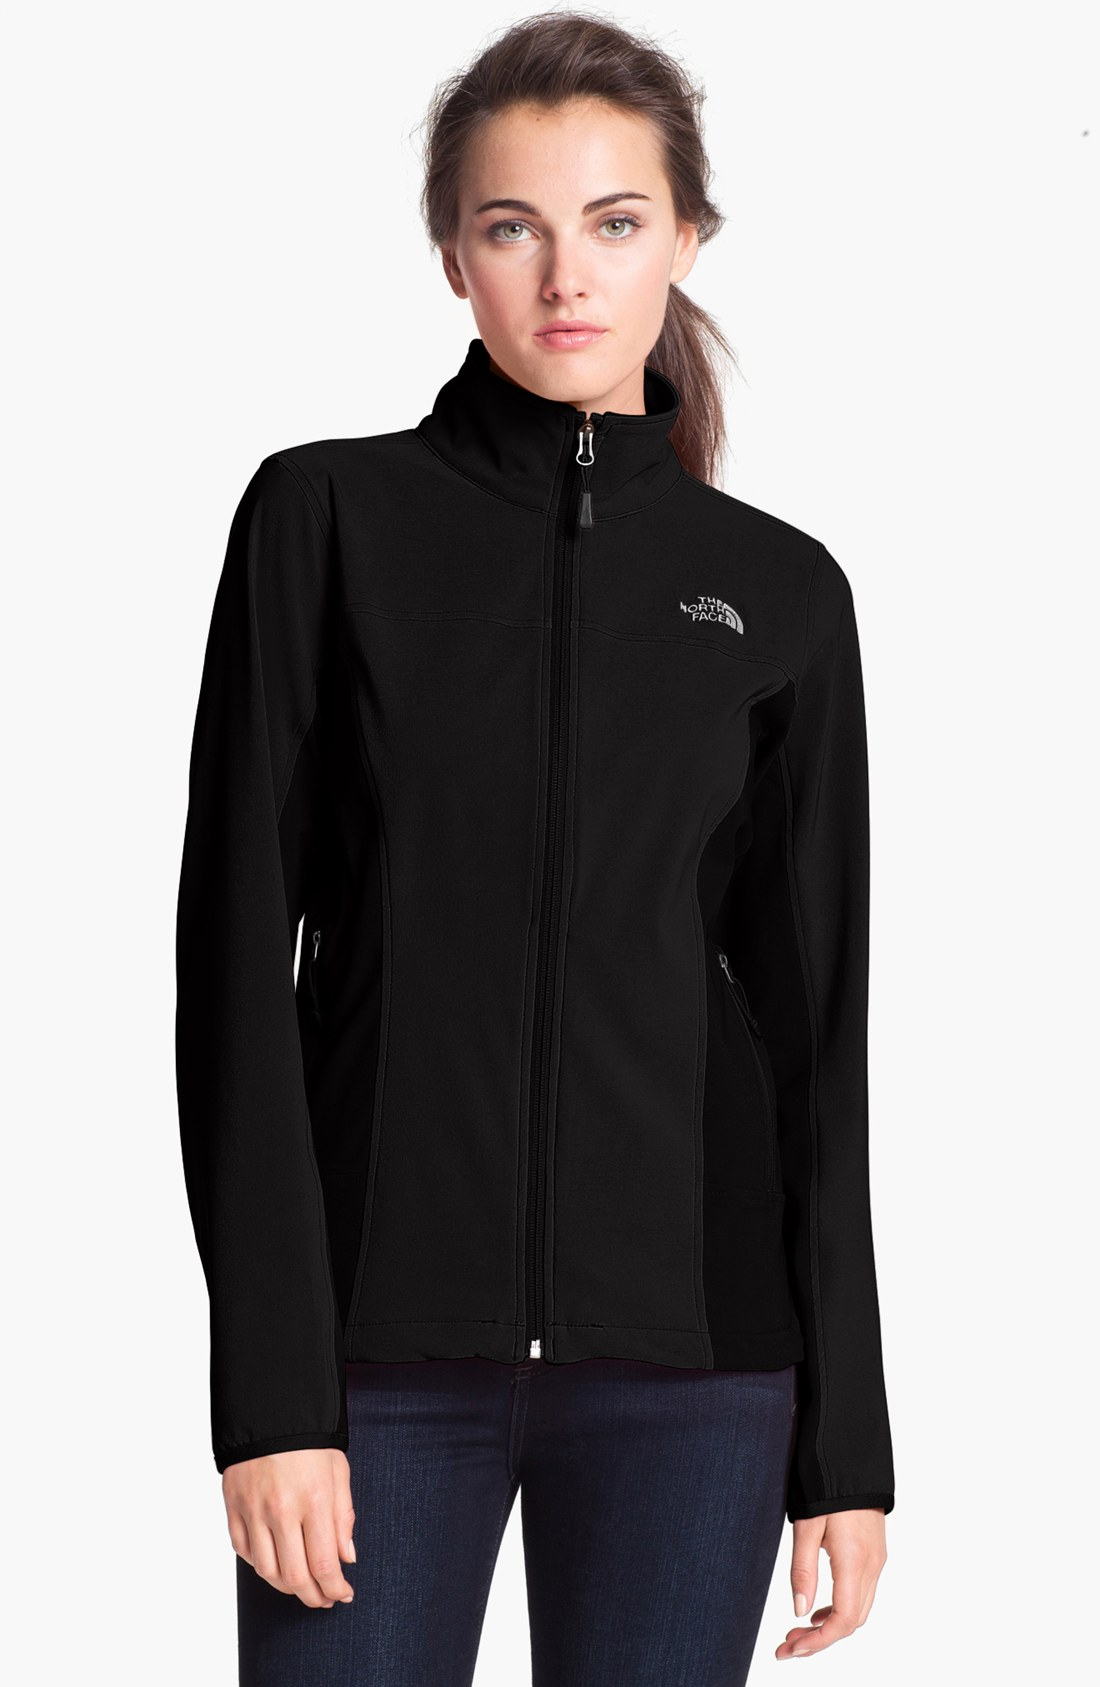 the north face nimble soft shell jacket in black lyst. Black Bedroom Furniture Sets. Home Design Ideas